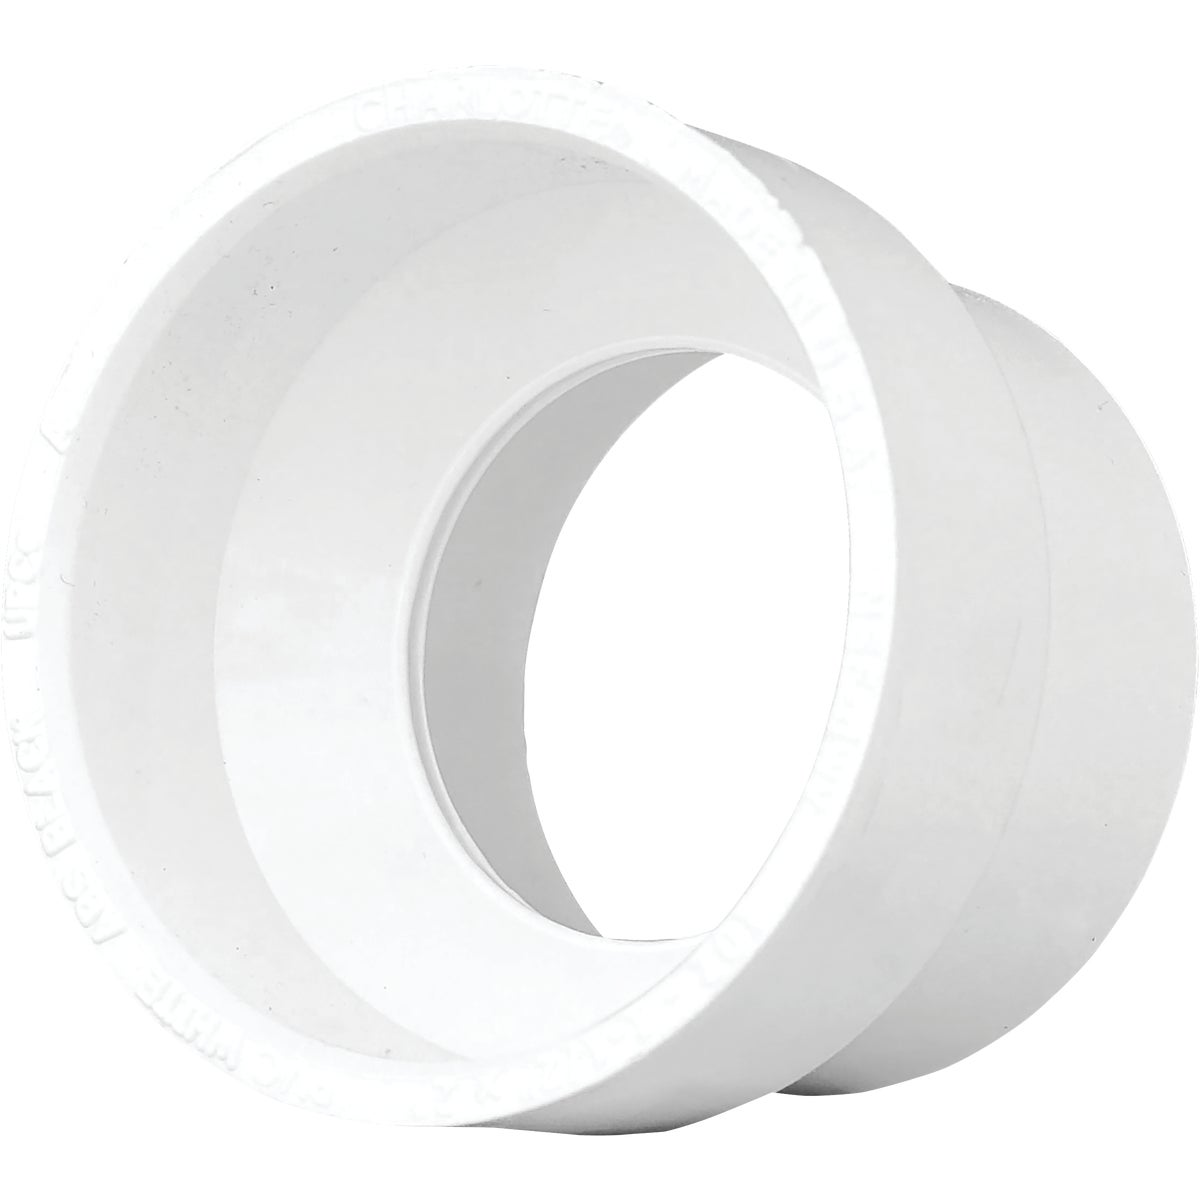 2X1-1/2 DWV REDU BUSHING - 70221 by Genova Inc  Pvc Dwv